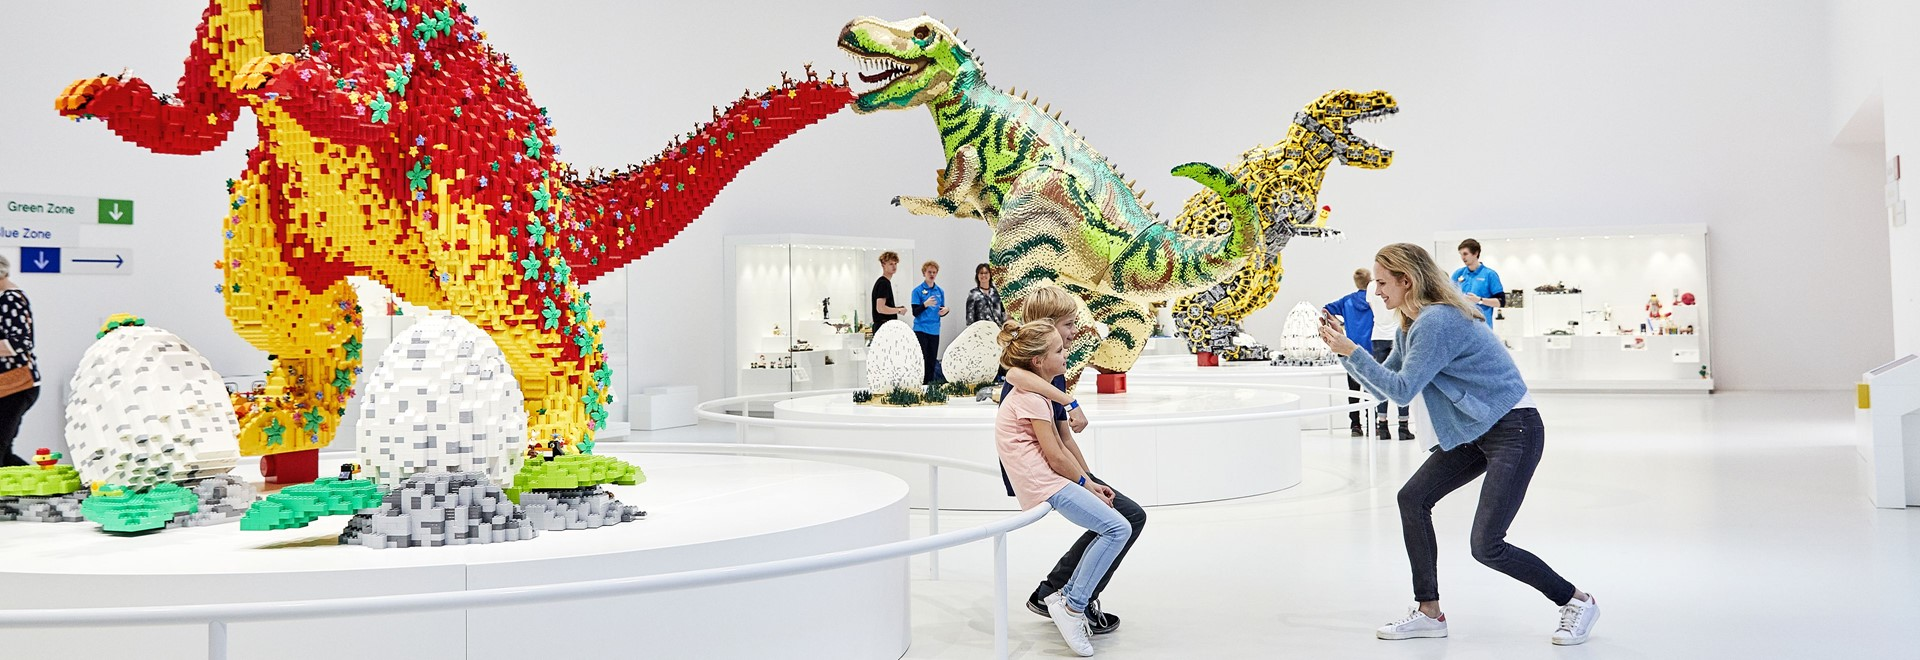 Plan your visit in LEGO House - see the opening calendar here